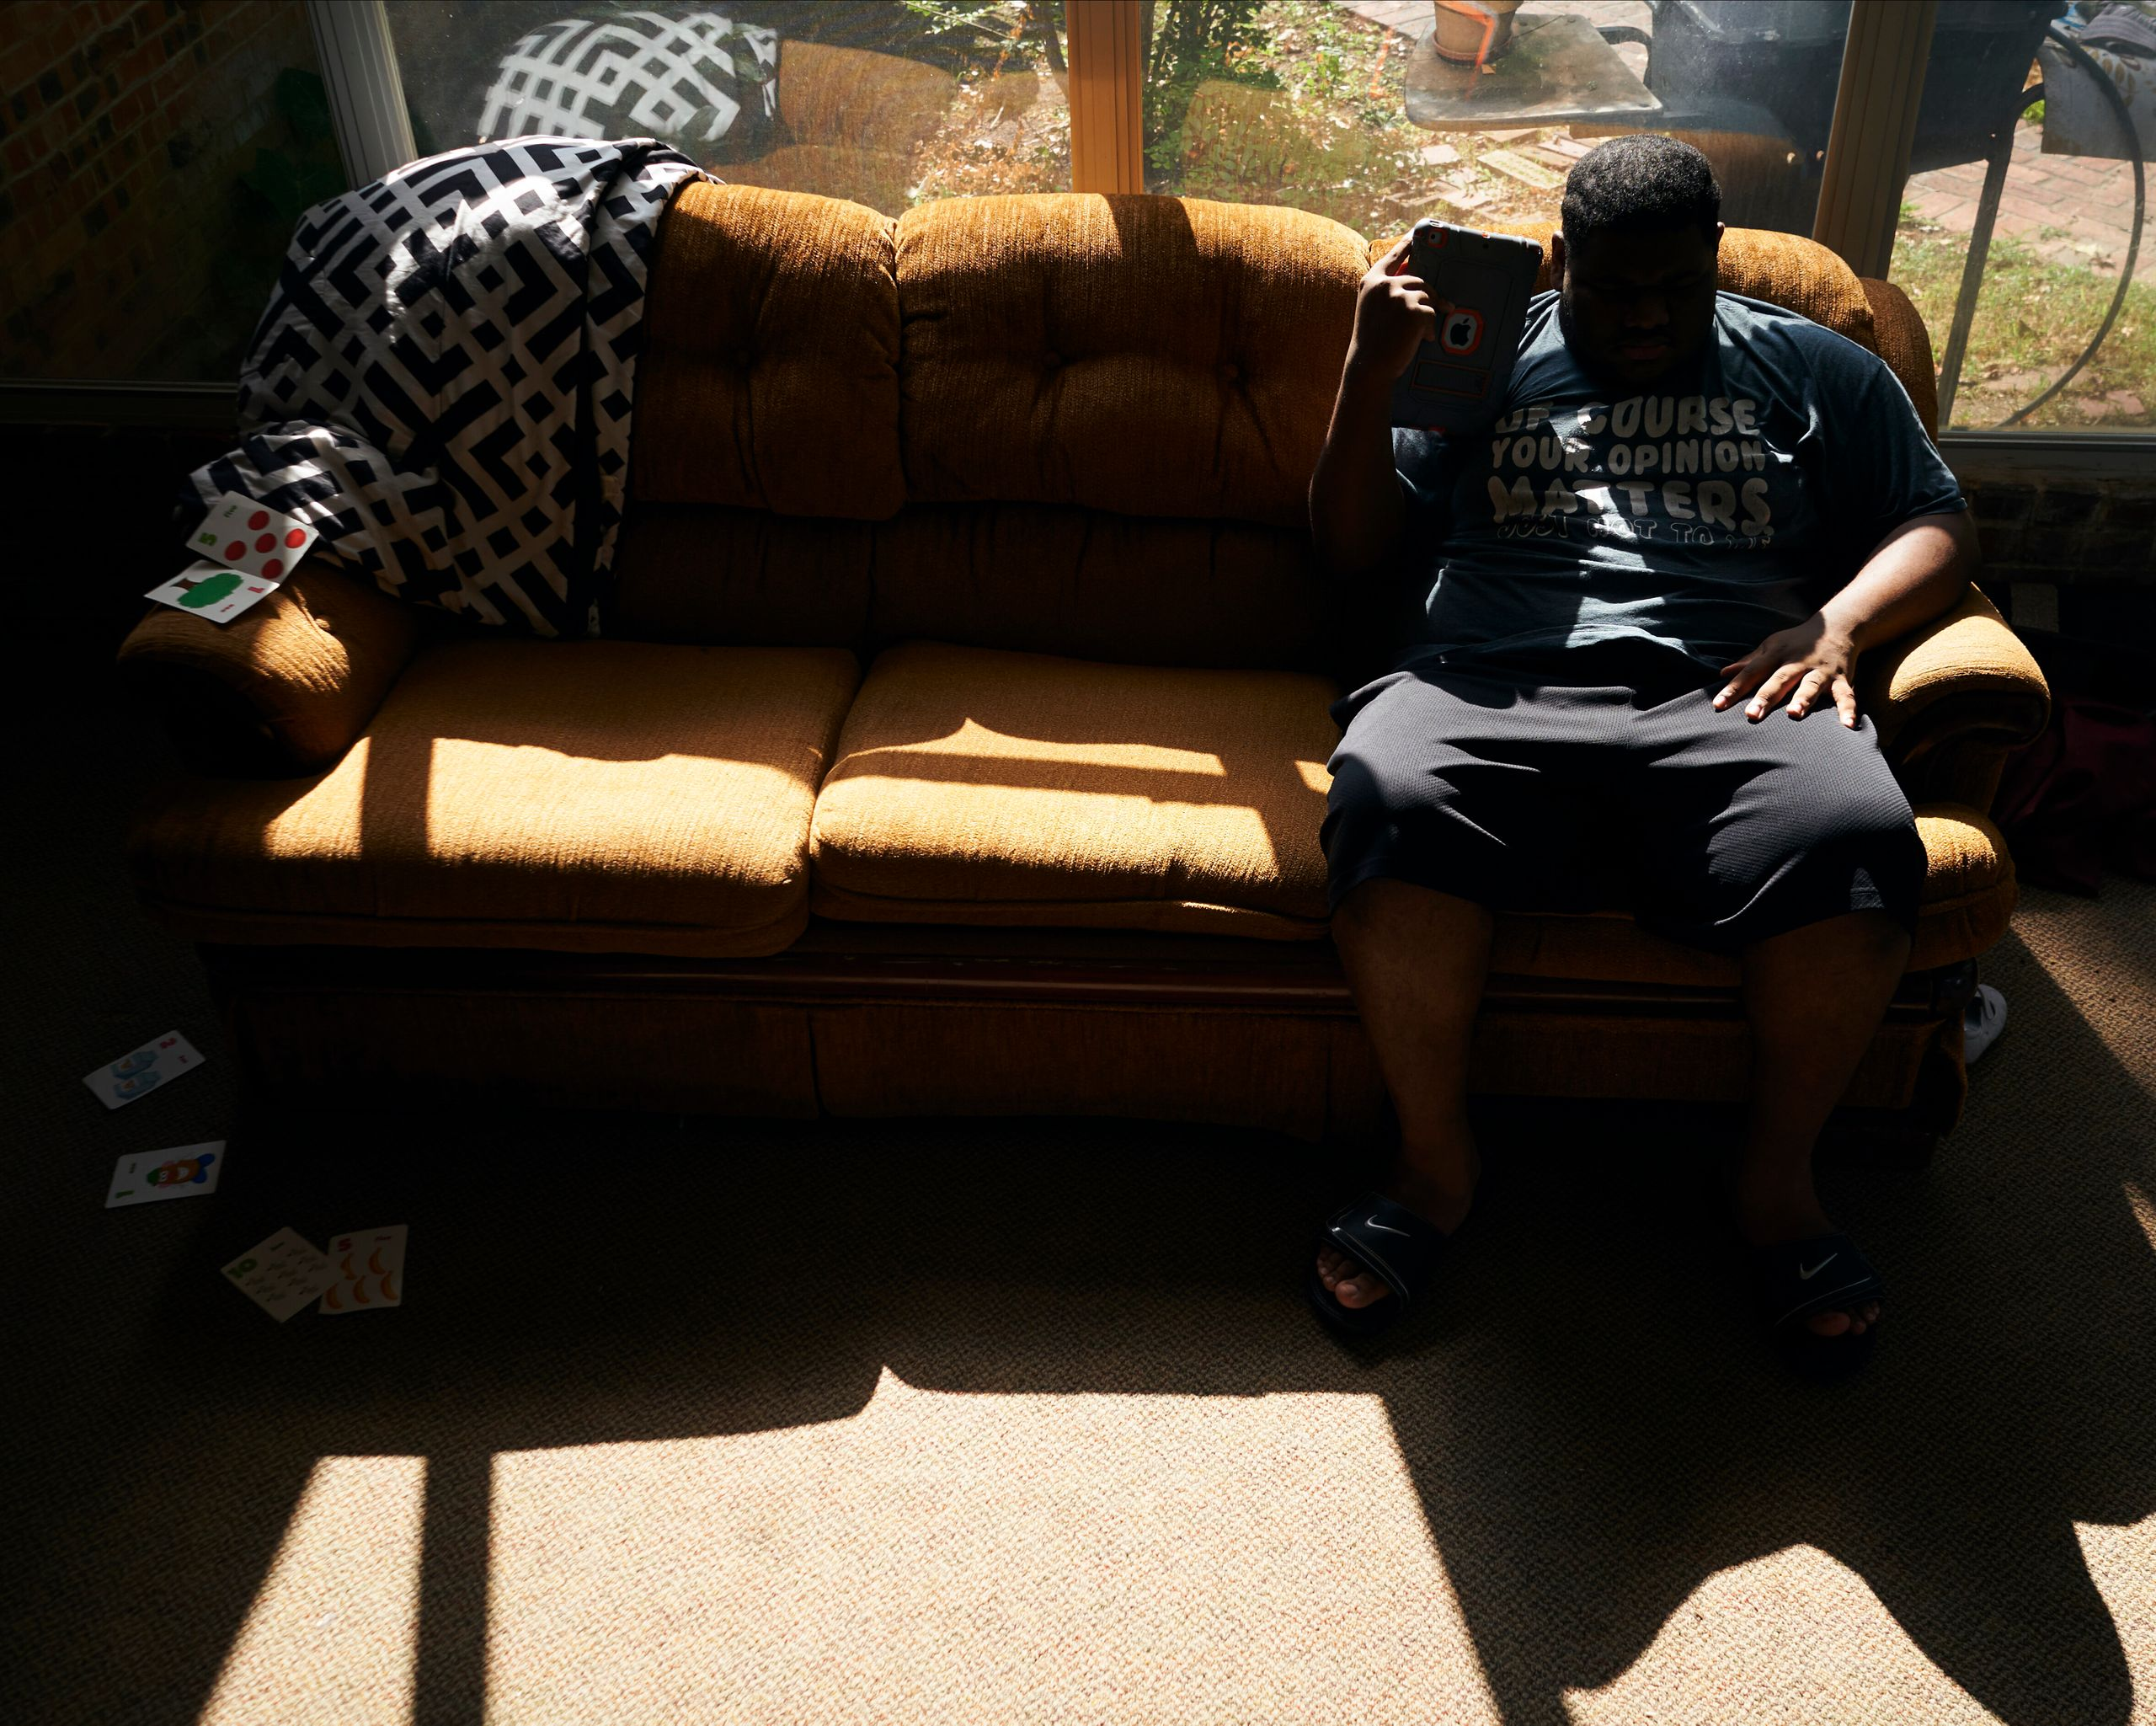 J.H. listens to music on his iPad in the sunroom at his home in Shreveport, Louisiana, on Aug. 25, 2019.